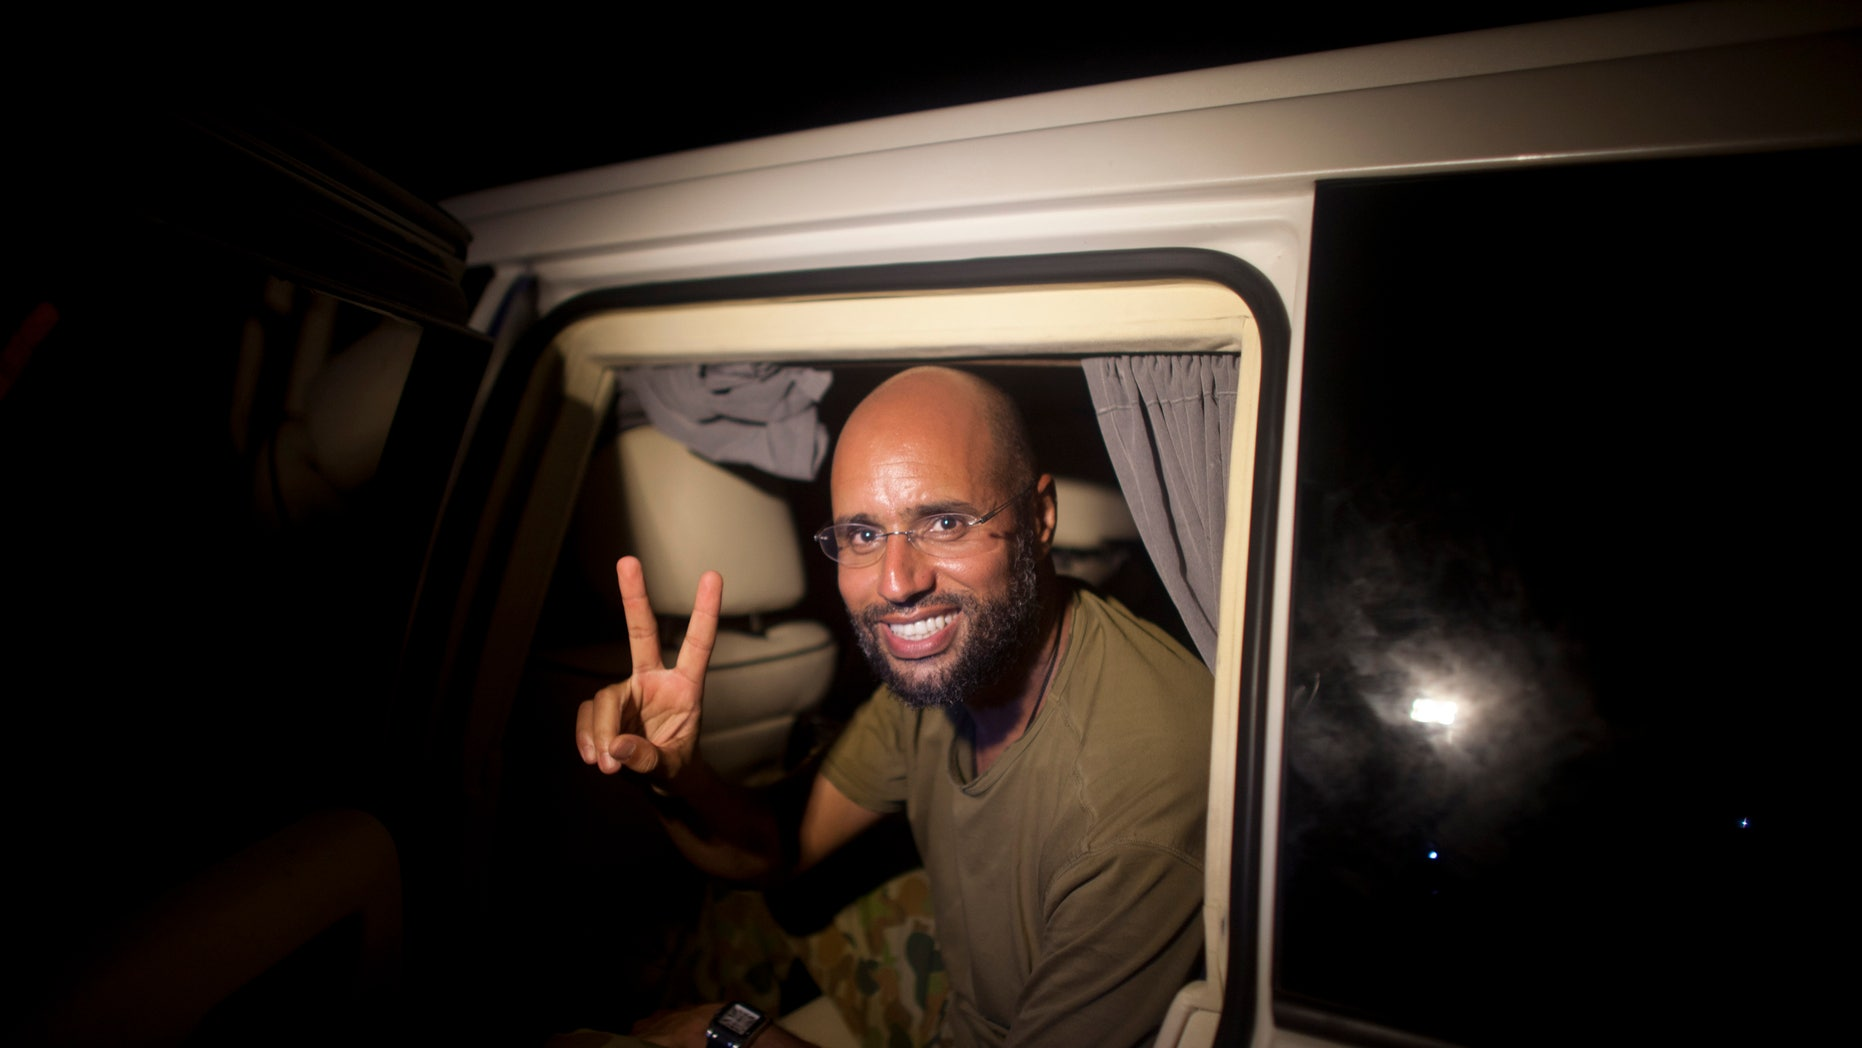 In this Tuesday, Aug. 23, 2011 file photo, Muammar Qaddafi's son Seif al-Islam makes a victory sign as he appears at the Rixos hotel in Tripoli, Libya. A Libyan commander told reporters Saturday, Nov. 19, 2011 that Seif al-Islam Gadhafi has been arrested in south Libya.